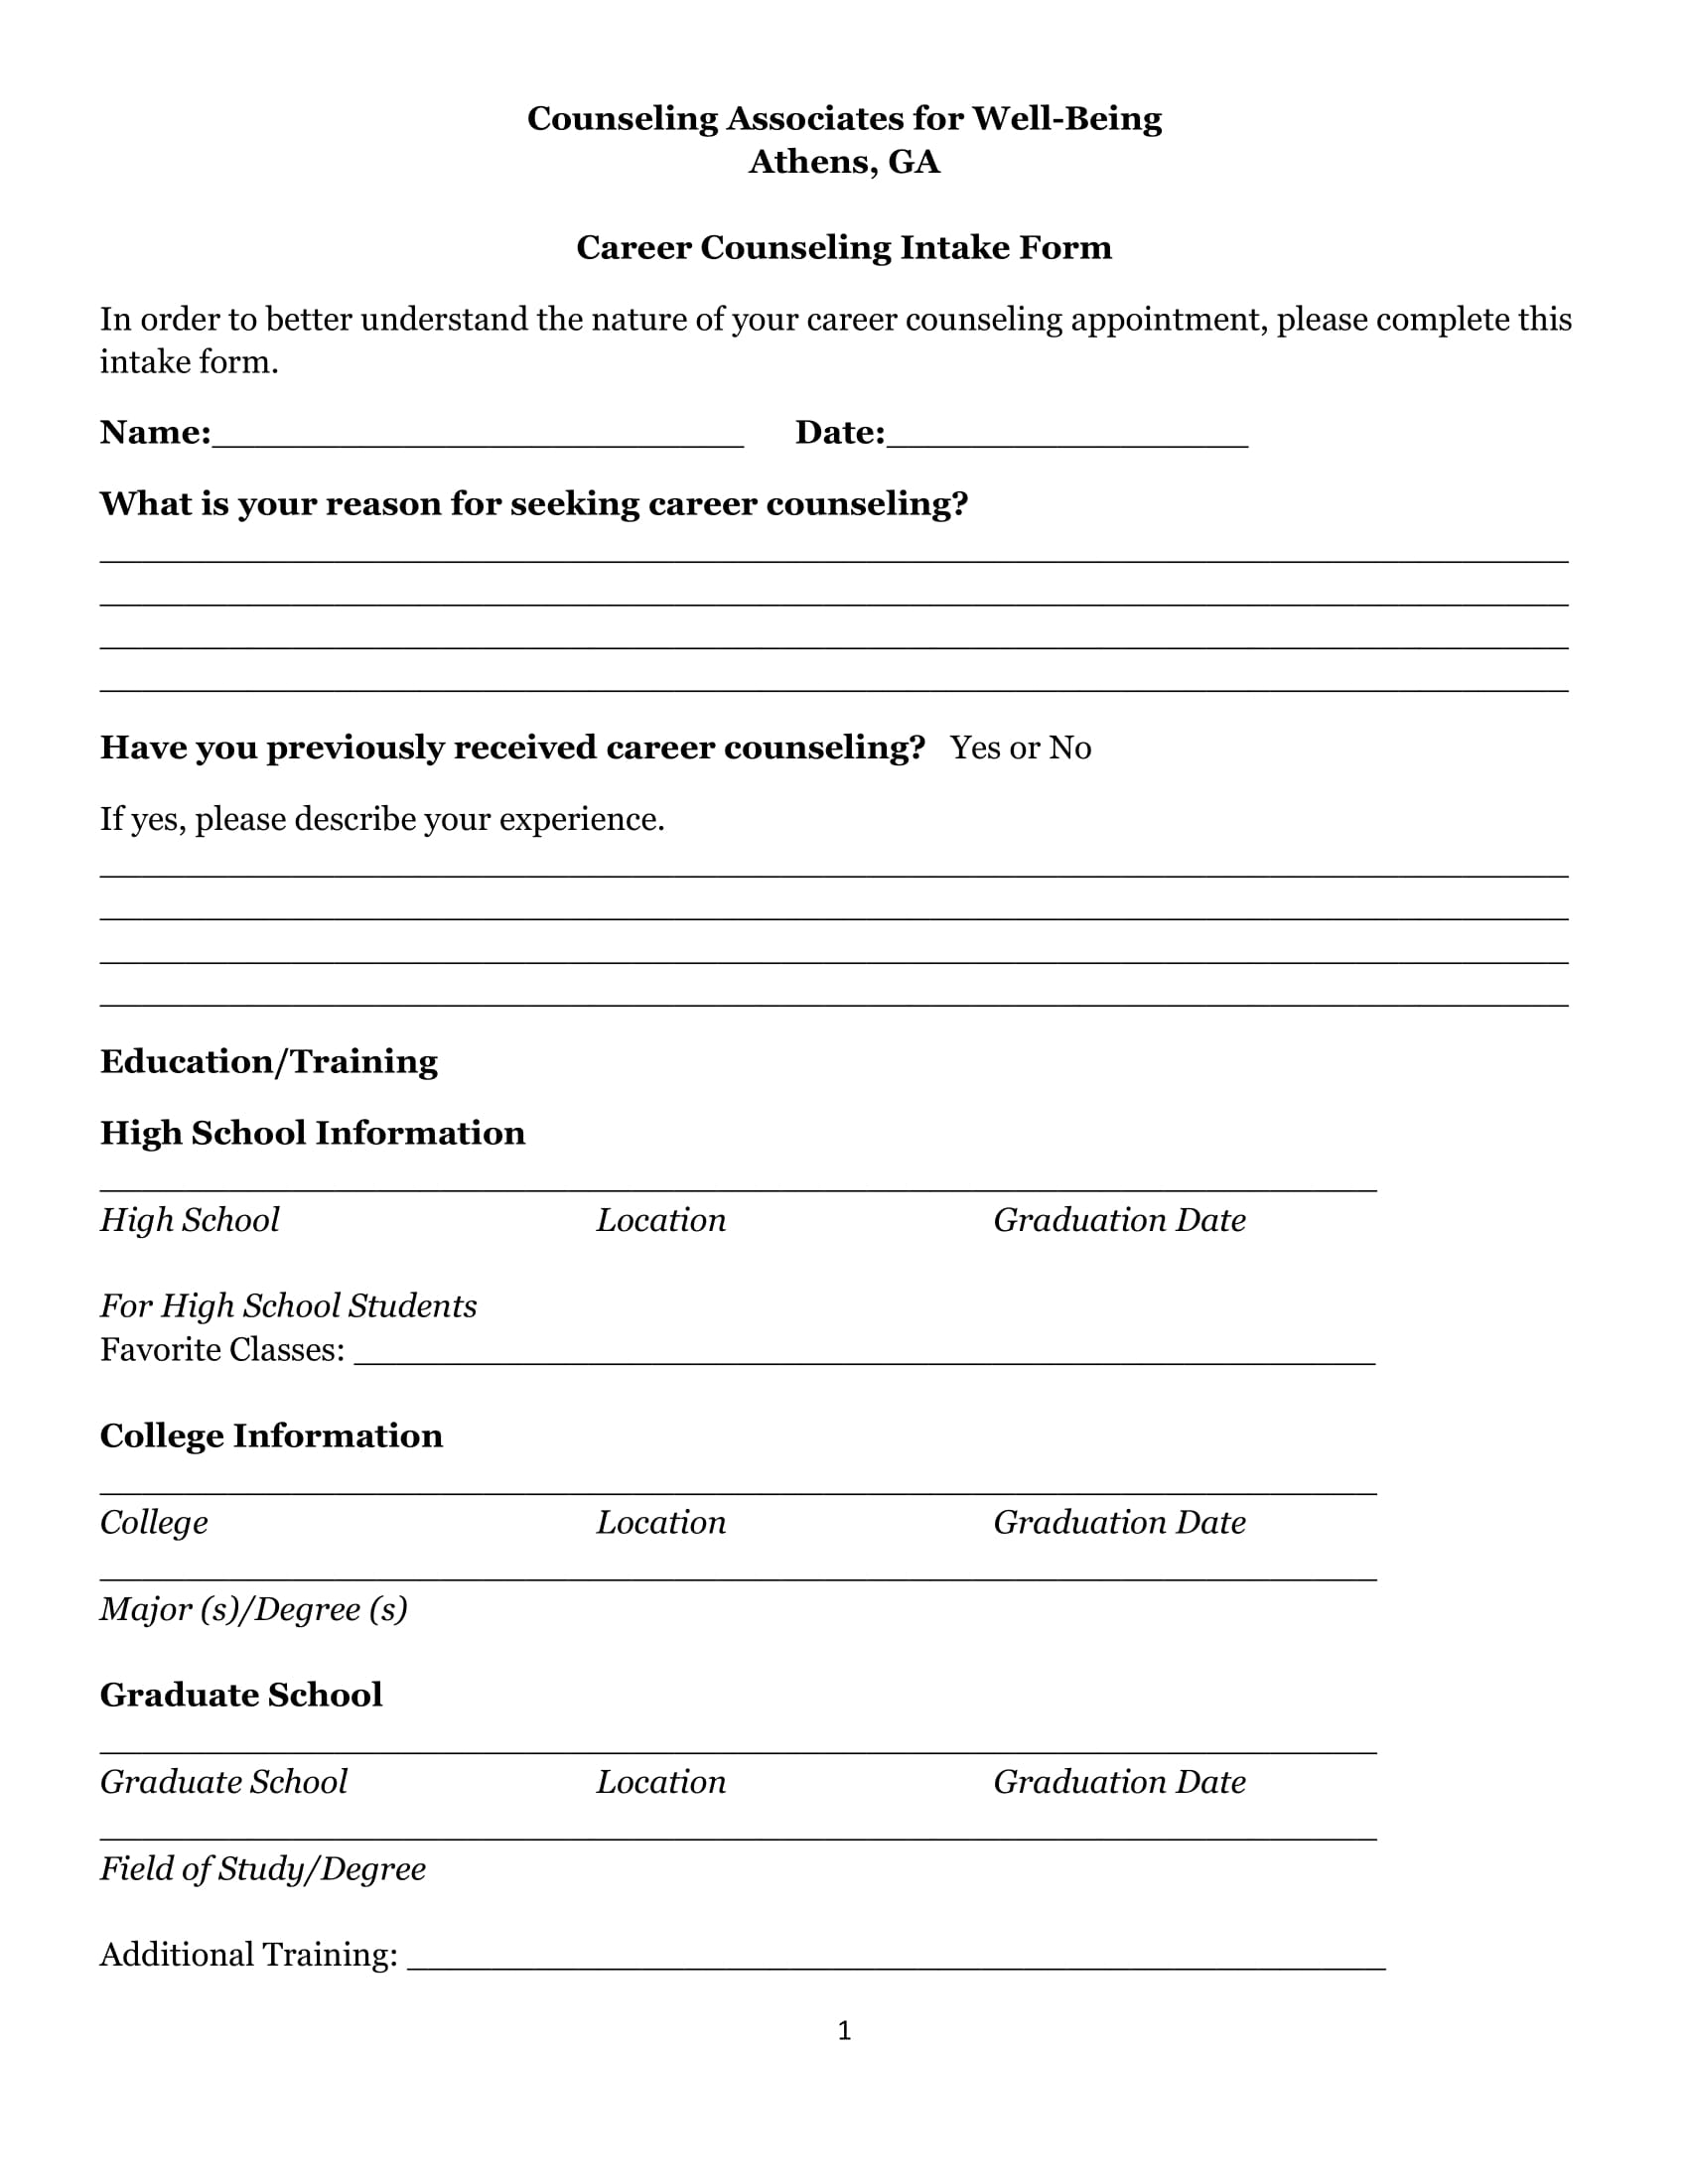 career counseling intake form 1